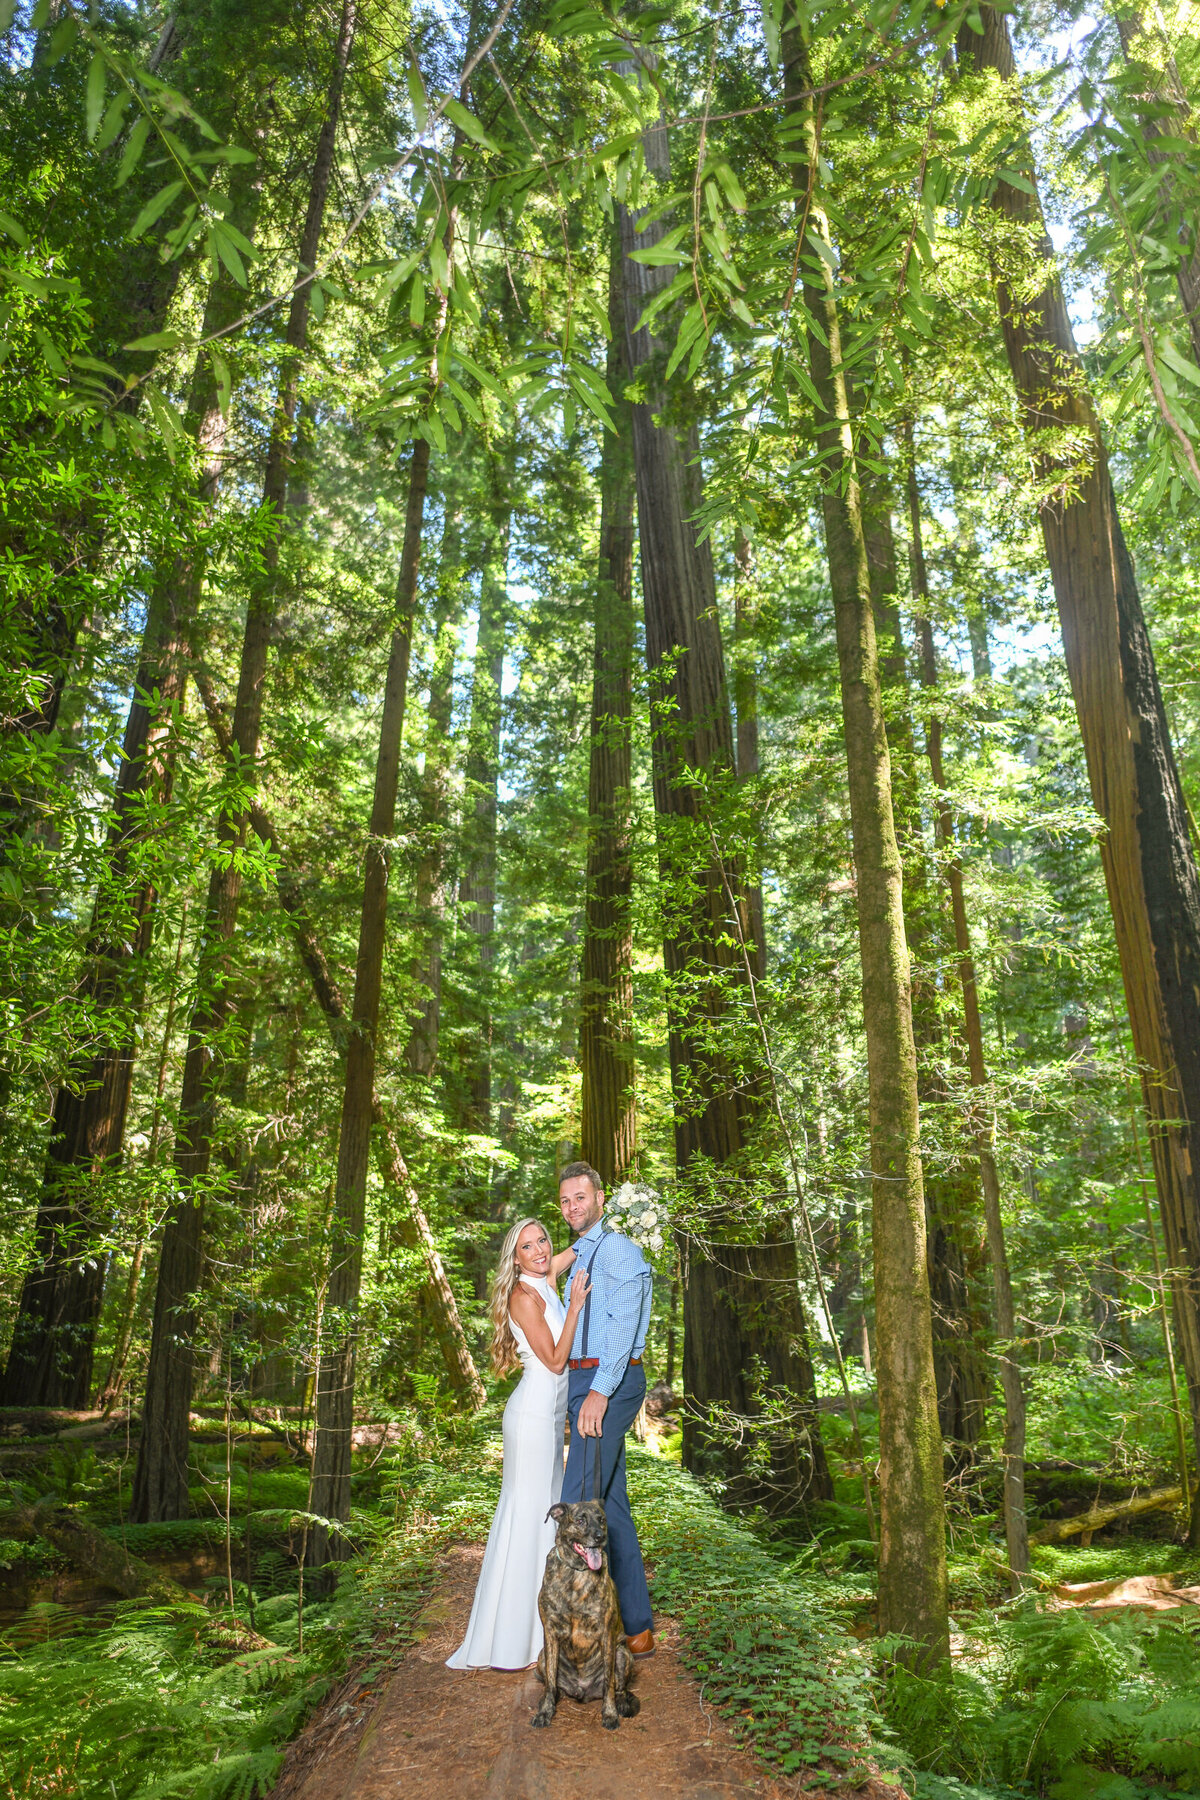 Humboldt-County-Elopement-Photographer-Redwoods-Avenue-of-the-Giants-Humboldt-Redwoods-Redwood-National-Park-Parky's-Pics-Coastal-Redwoods-Elopements-29